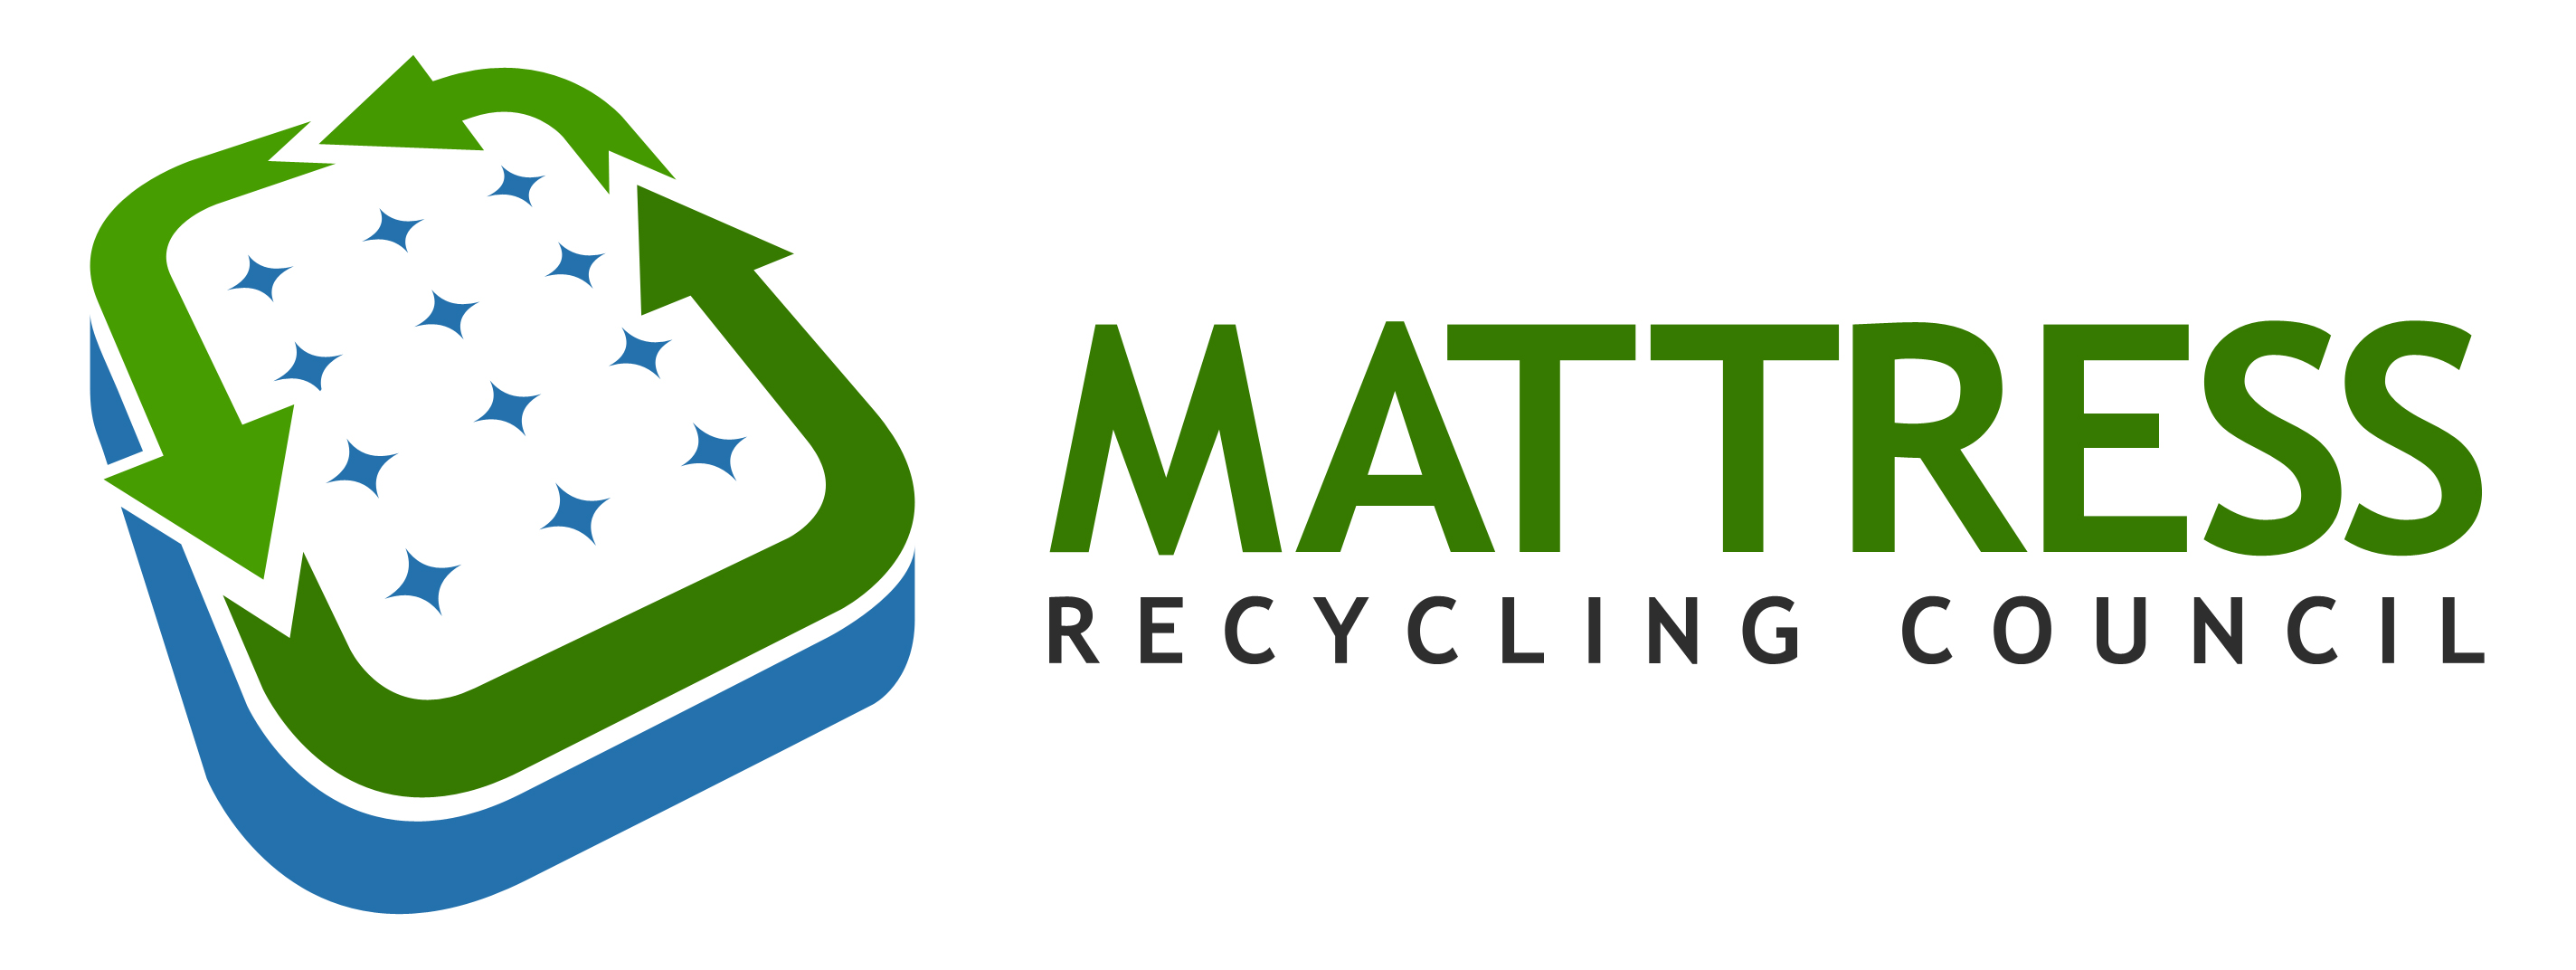 Mattress Recycling : Mattress Recycling Council Hires Marketing & Communications ...